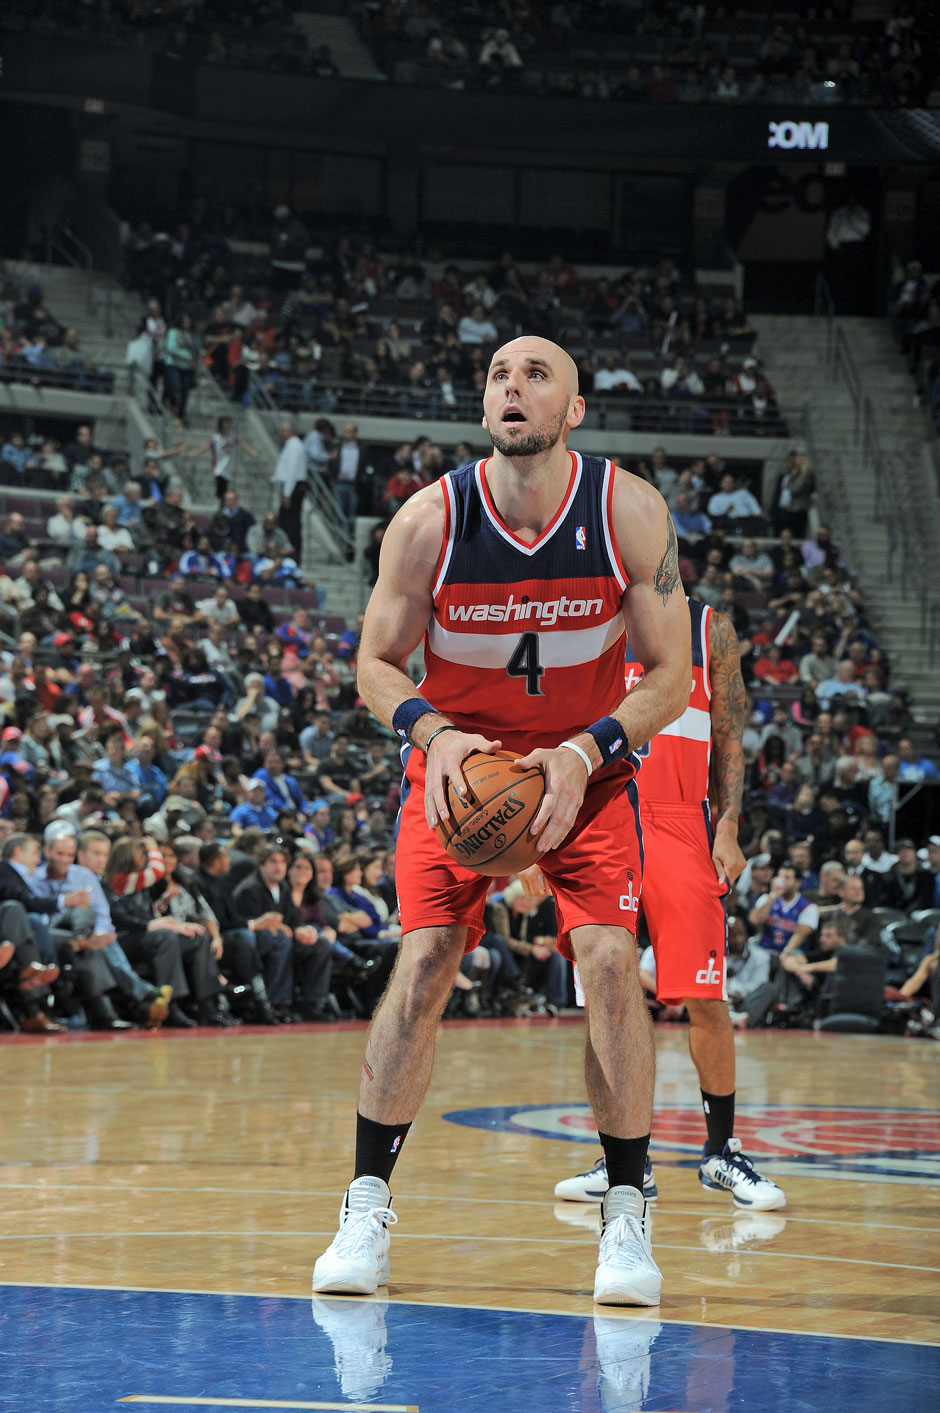 Bank: Marcin Gortat (Center, 11,1 Punkte, 8,5 Rebounds)